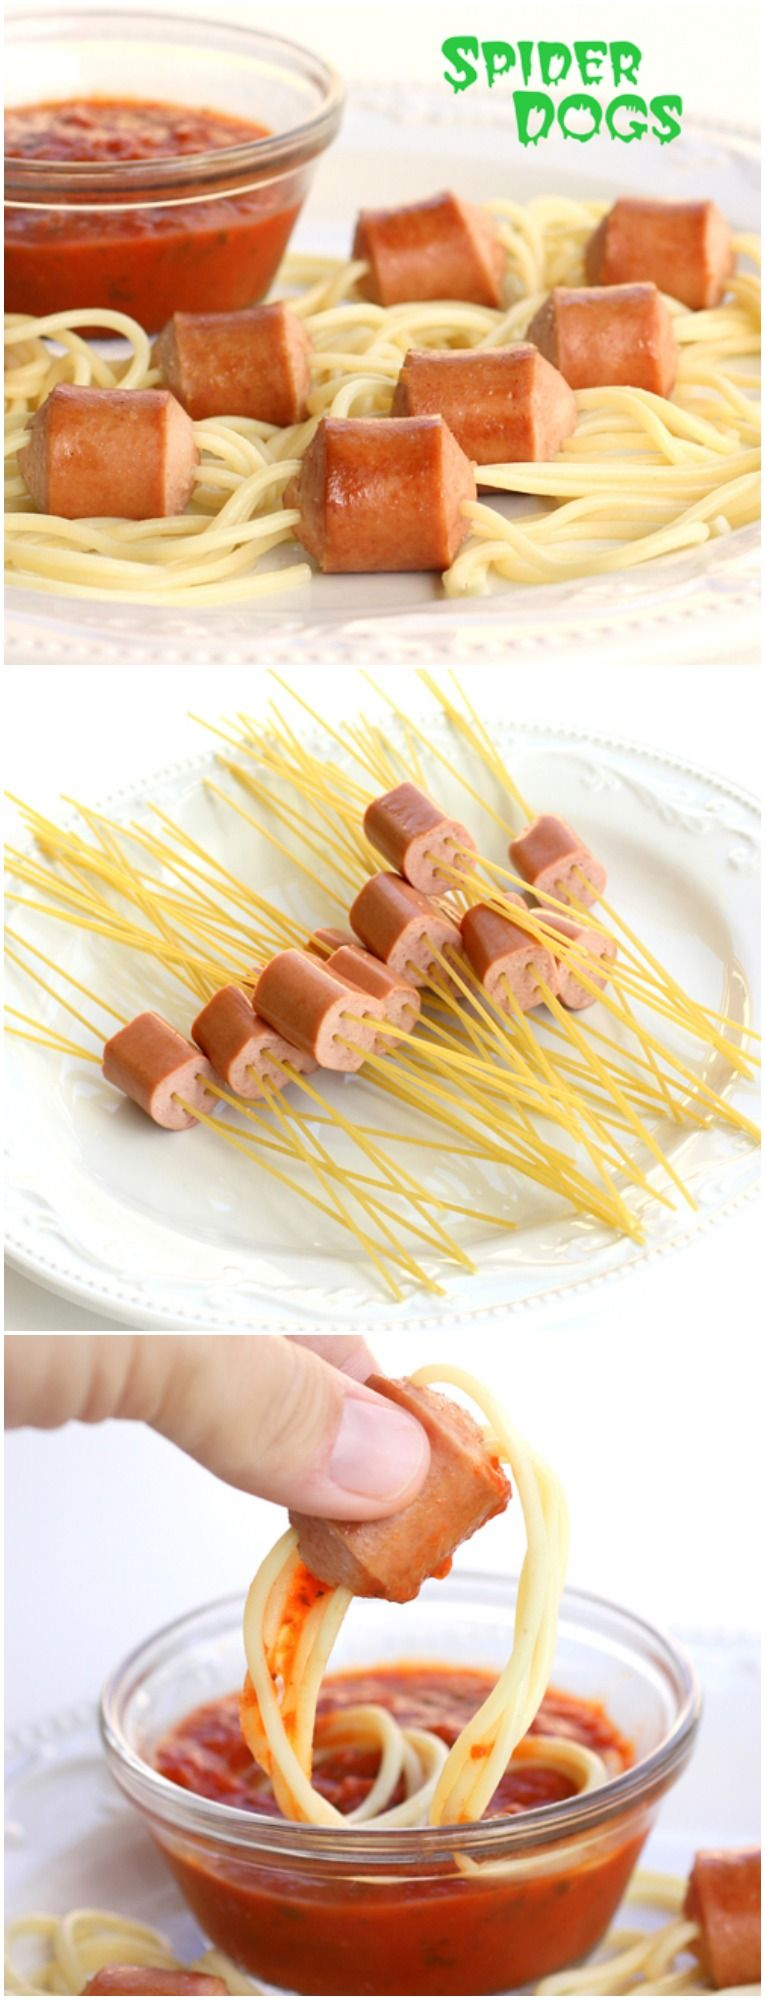 Pin by Evelyn Eckhart on Cute foods for kids in 2020